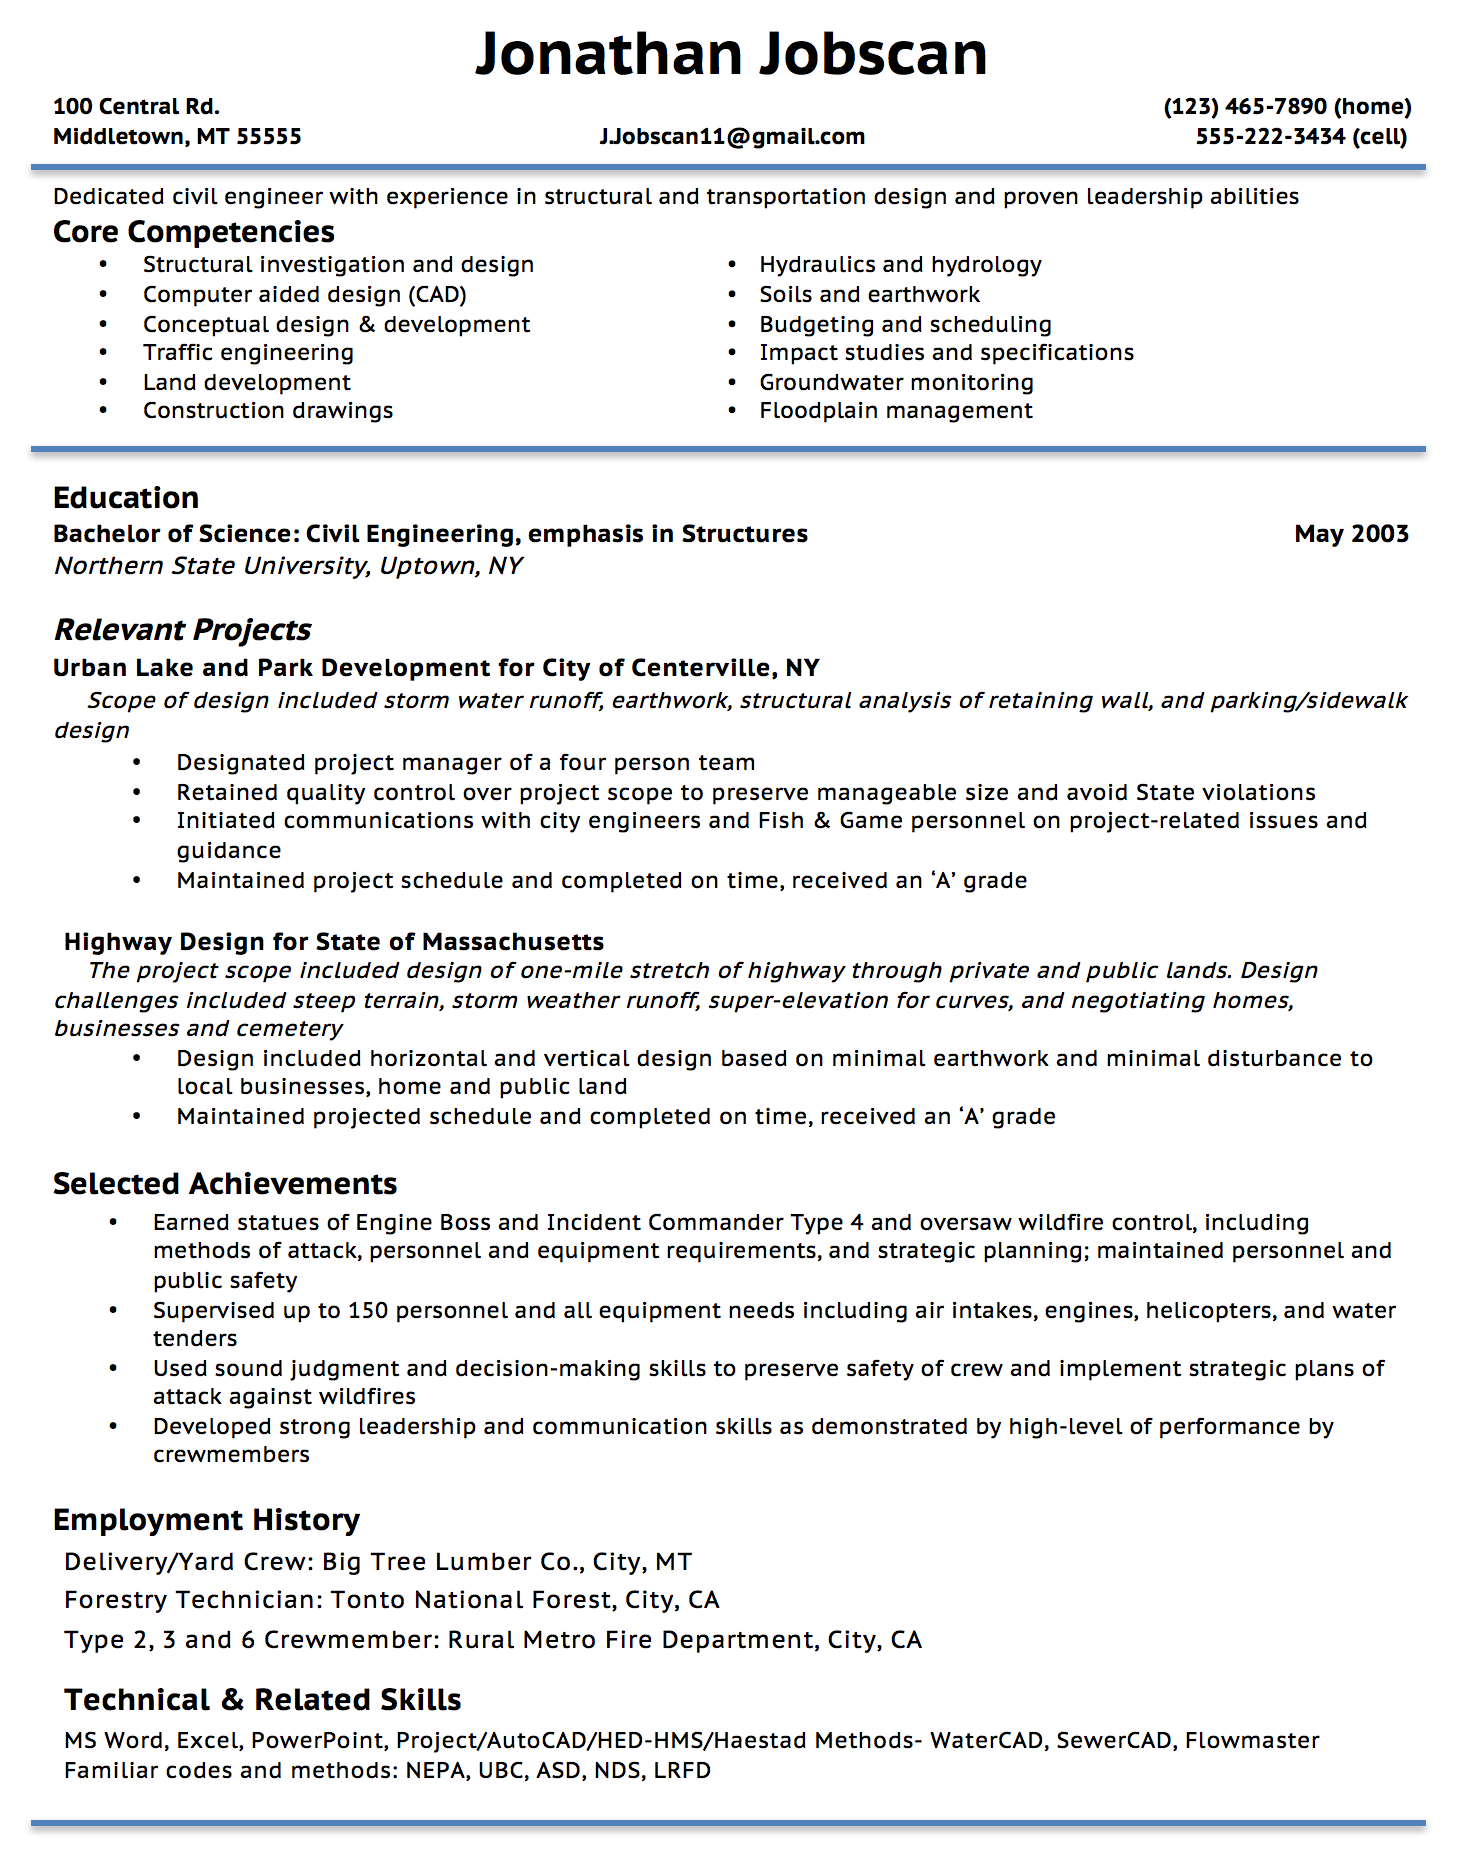 Opposenewapstandardsus  Inspiring Resume Writing Guide  Jobscan With Remarkable Example Of A Functional Resume Format With Beautiful Nursing Graduate Resume Also Objective On A Resume Example In Addition Resume Objectives For Teachers And Rn New Grad Resume As Well As Resume French Additionally A Resume Format From Jobscanco With Opposenewapstandardsus  Remarkable Resume Writing Guide  Jobscan With Beautiful Example Of A Functional Resume Format And Inspiring Nursing Graduate Resume Also Objective On A Resume Example In Addition Resume Objectives For Teachers From Jobscanco